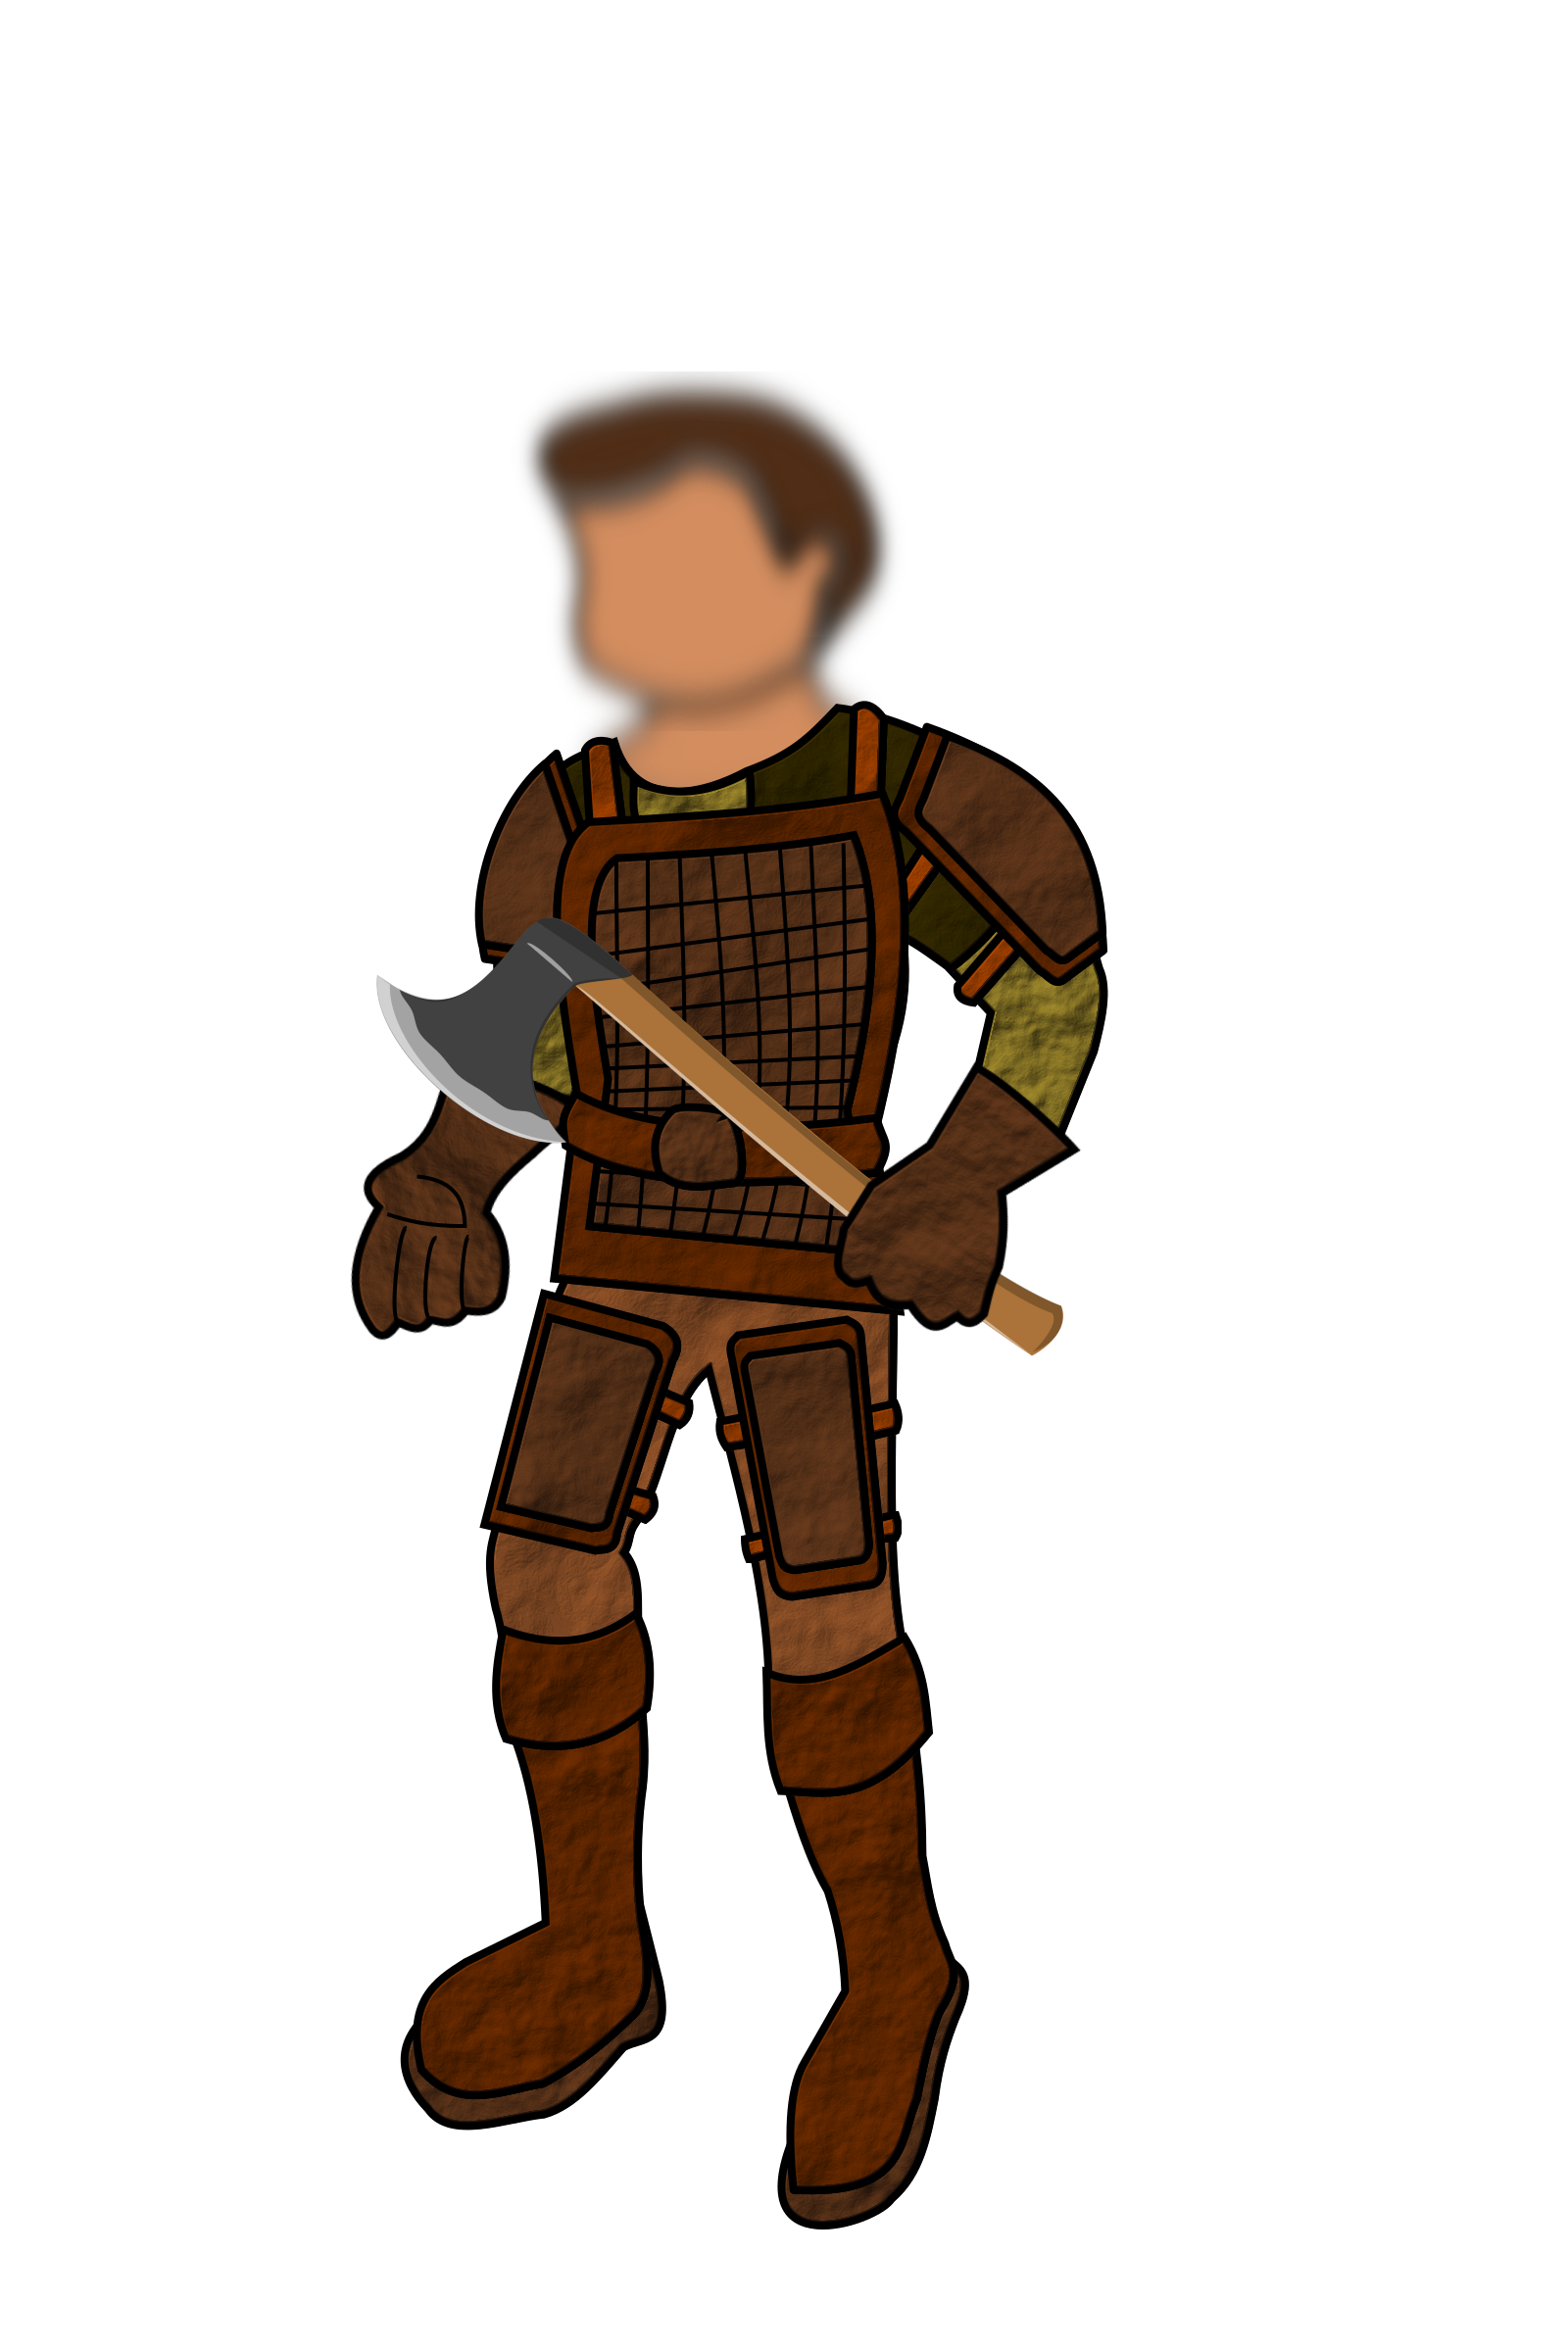 Leather Armor clipart #13, Download drawings